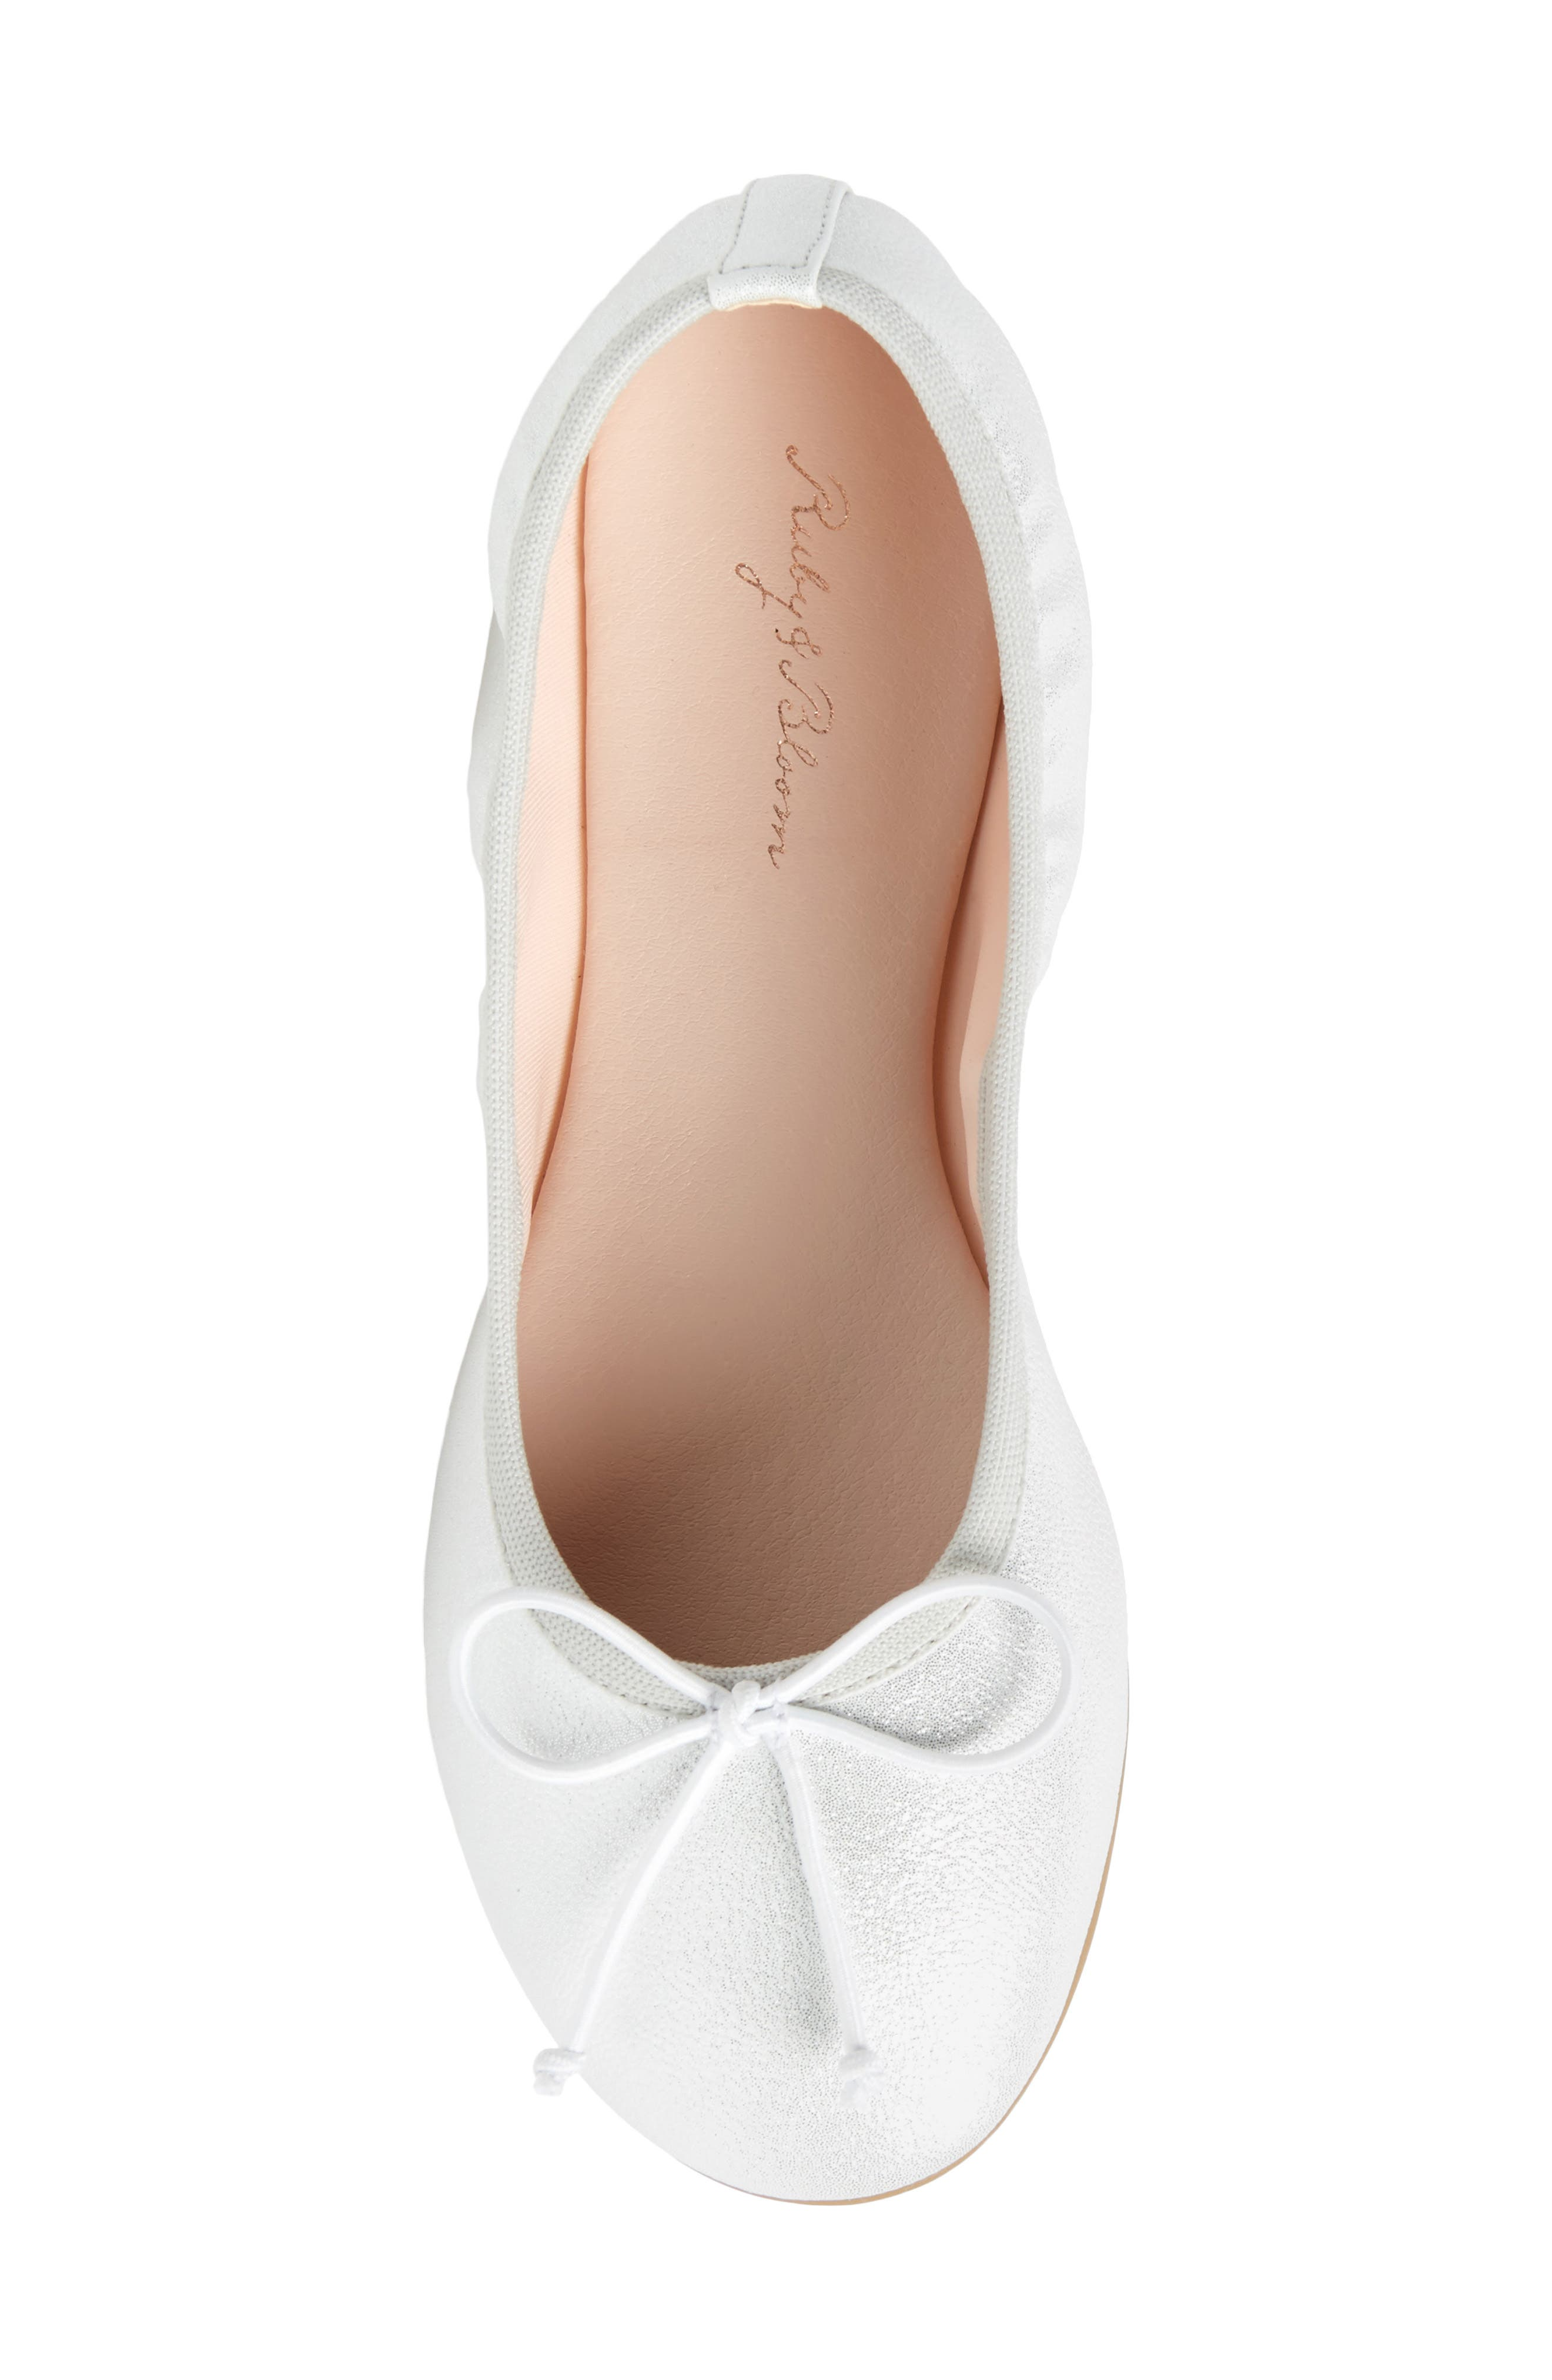 Bella Ballet Flat,                             Alternate thumbnail 5, color,                             Silver Shimmer Faux Leather